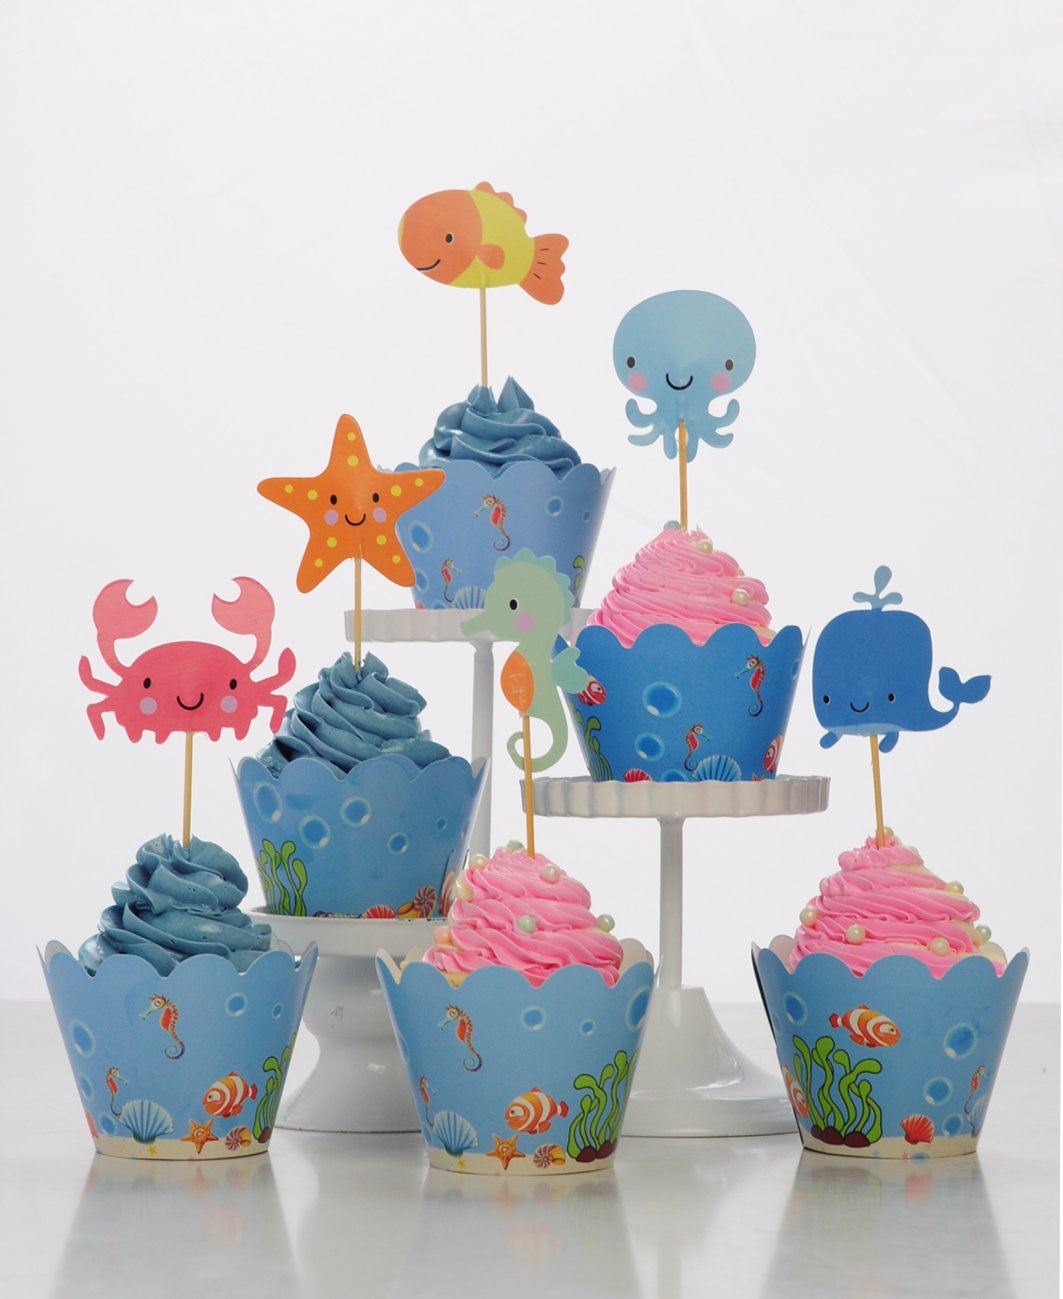 BeBeFun Adjustable Cupcake Wrappers and Toppers Under the Sea and Marin Animals Theme for Kids Birthday Party Supplies and Special Events Supplies 24pcs Wrappers and 24pcs Toppers in Pack. by BeBeFun (Image #2)